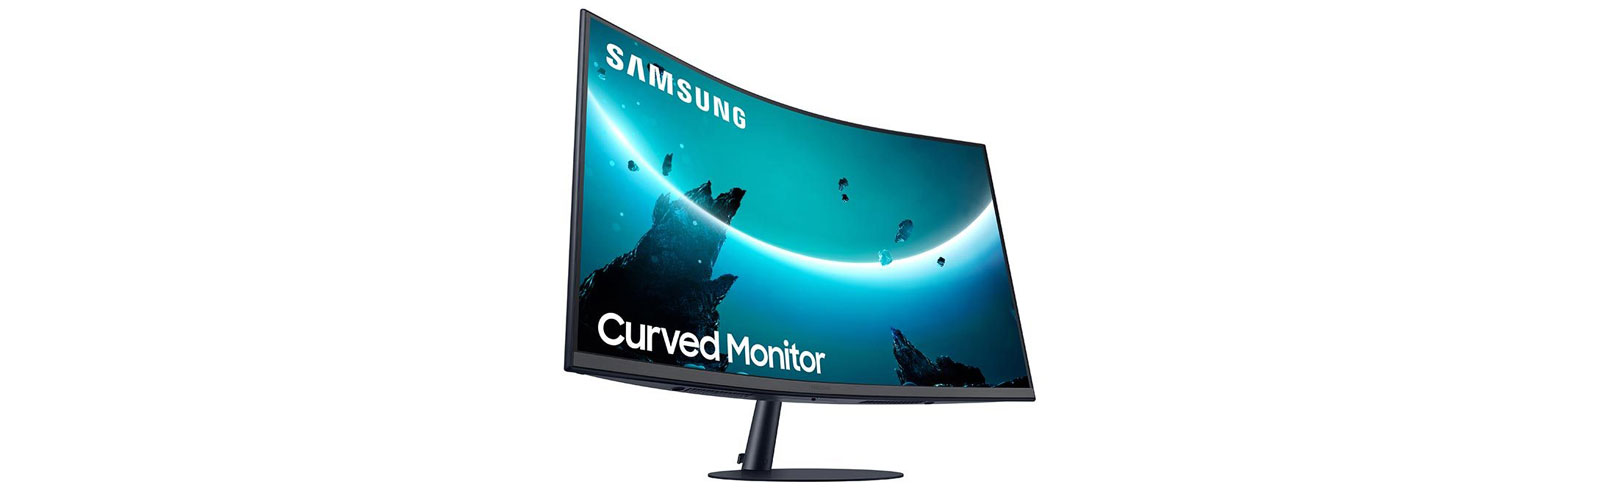 Samsung unveils the C32T55, C27T55, C24T55 curved desktop monitors